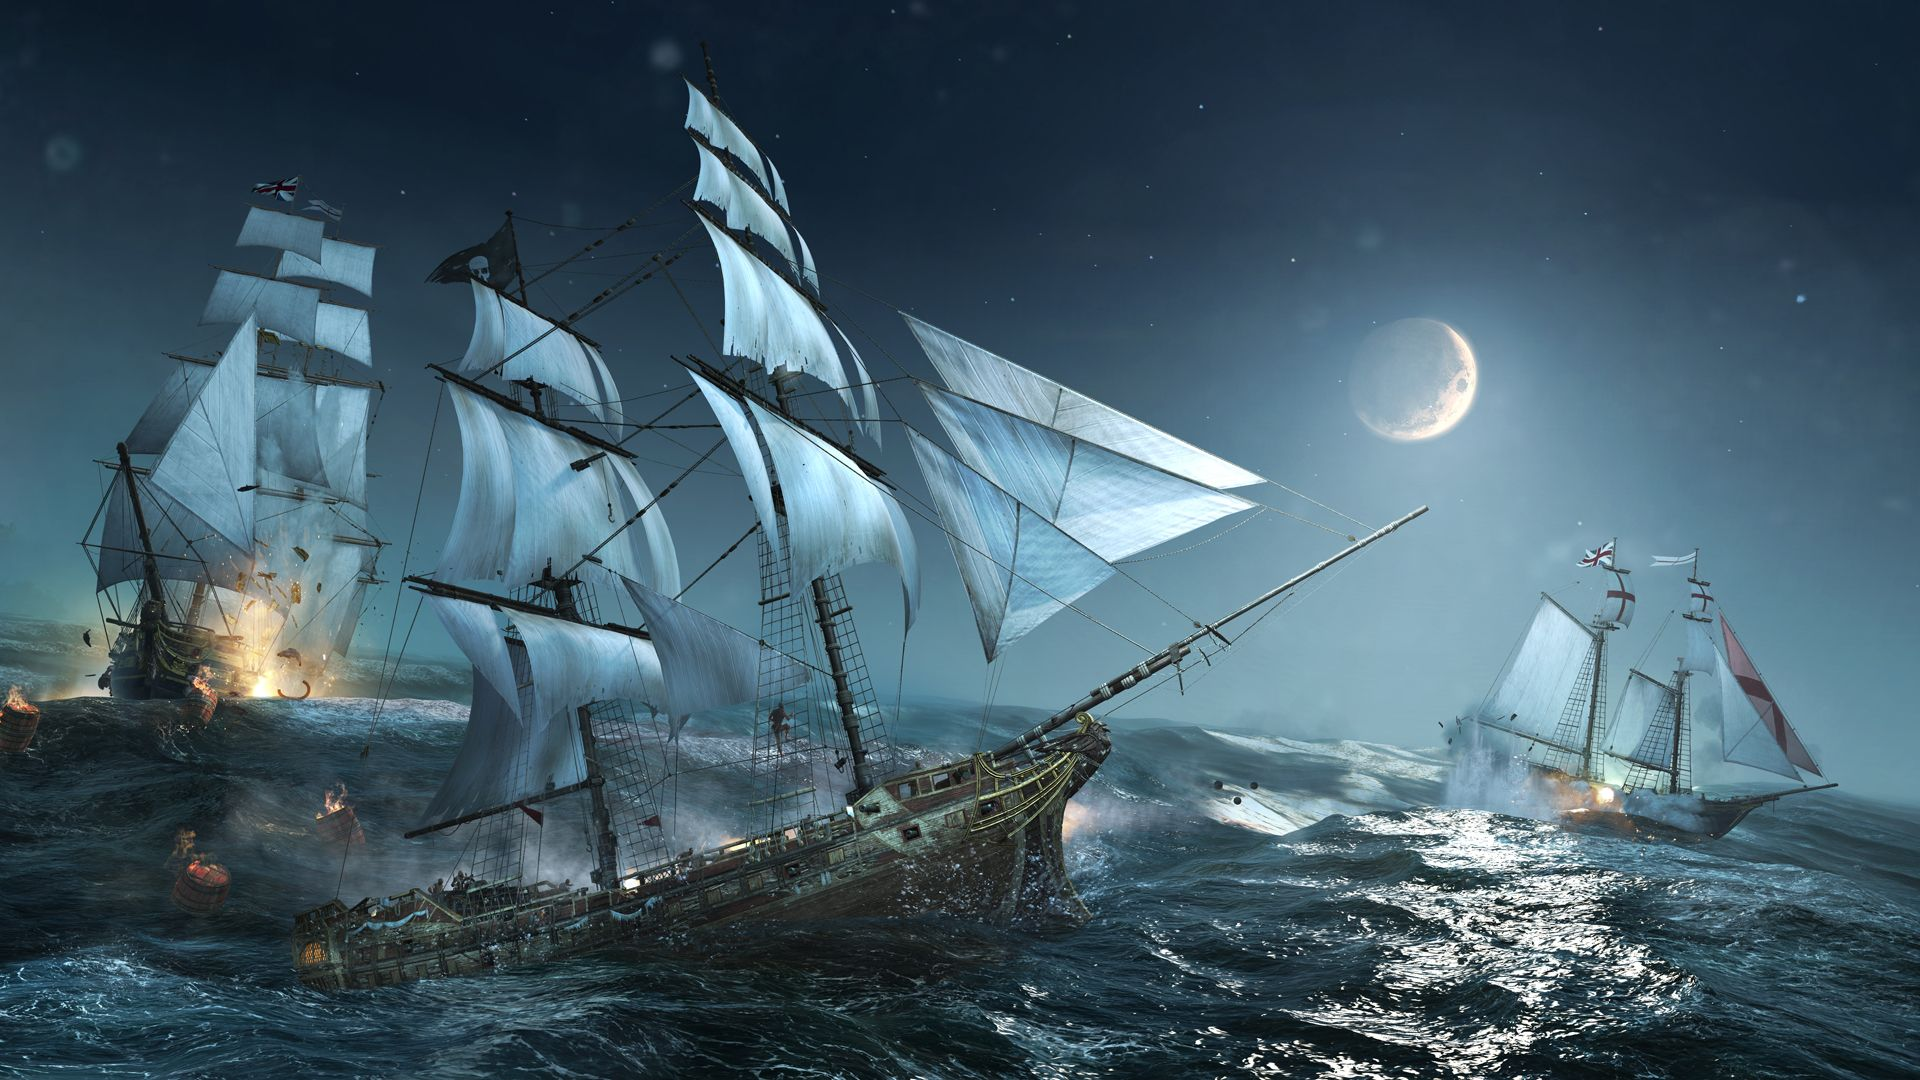 Sailing Ships HD Wallpaper | 1920x1080 | ID:51976